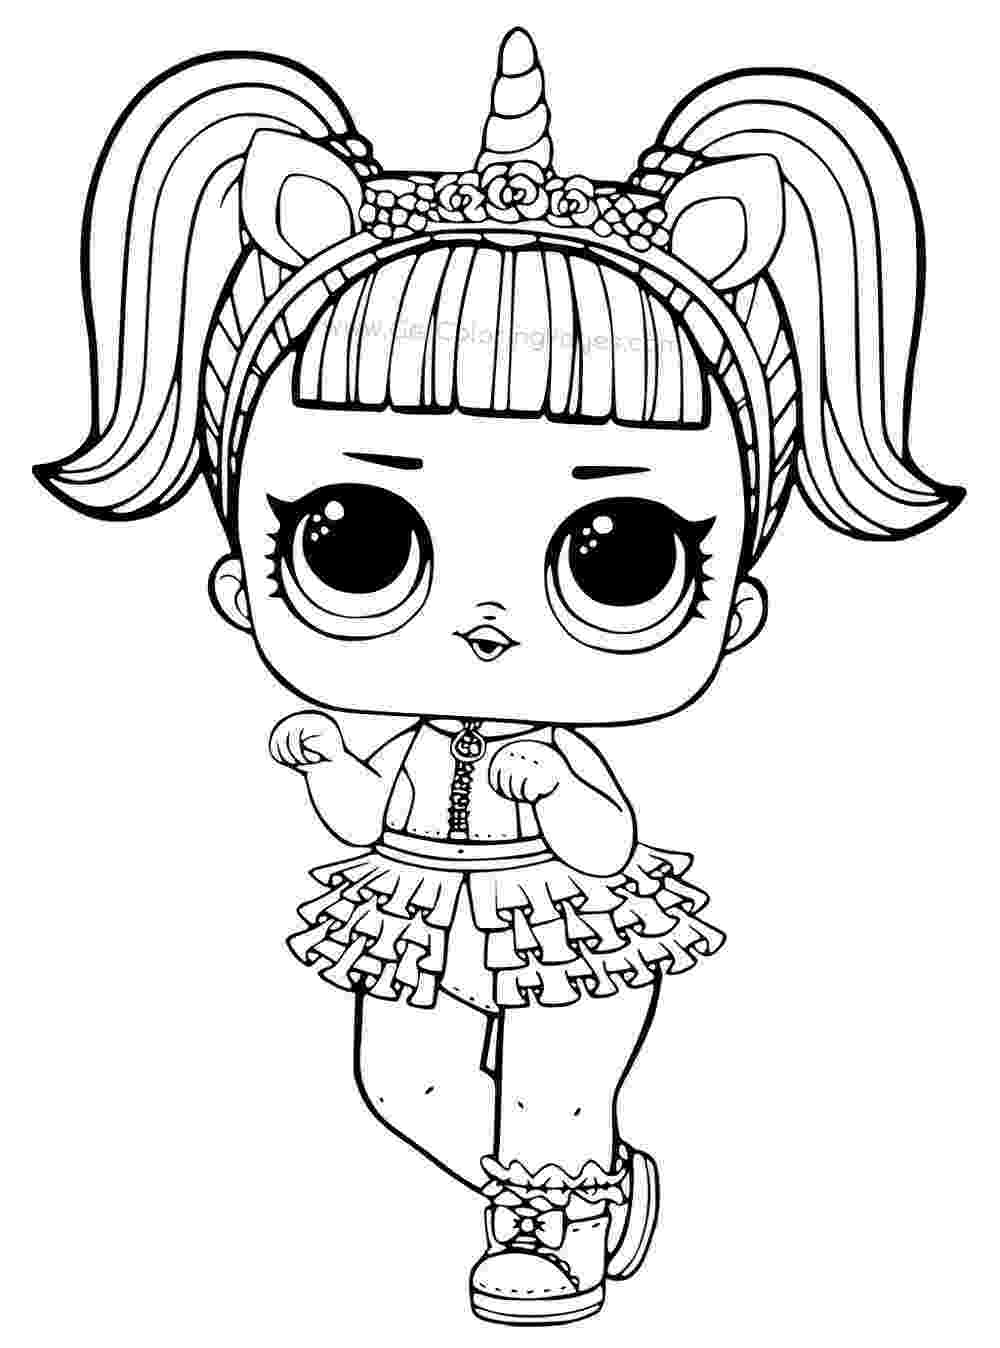 black and white colouring pages coloring pages of lol surprise dolls 80 pieces of black colouring pages and black white